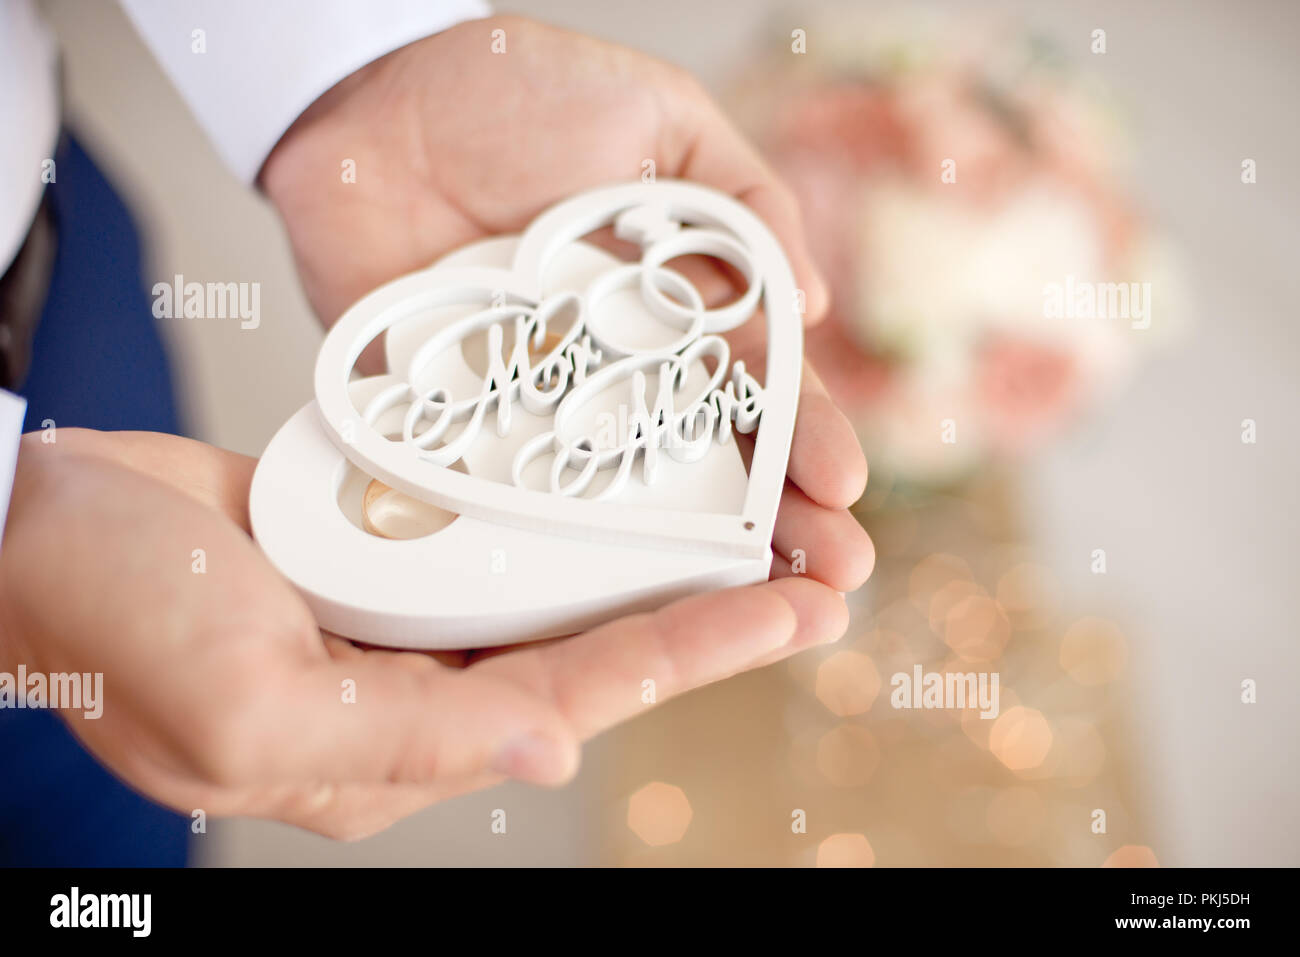 Close Up White Handmade Wedding Gift Box On Male Palms Against